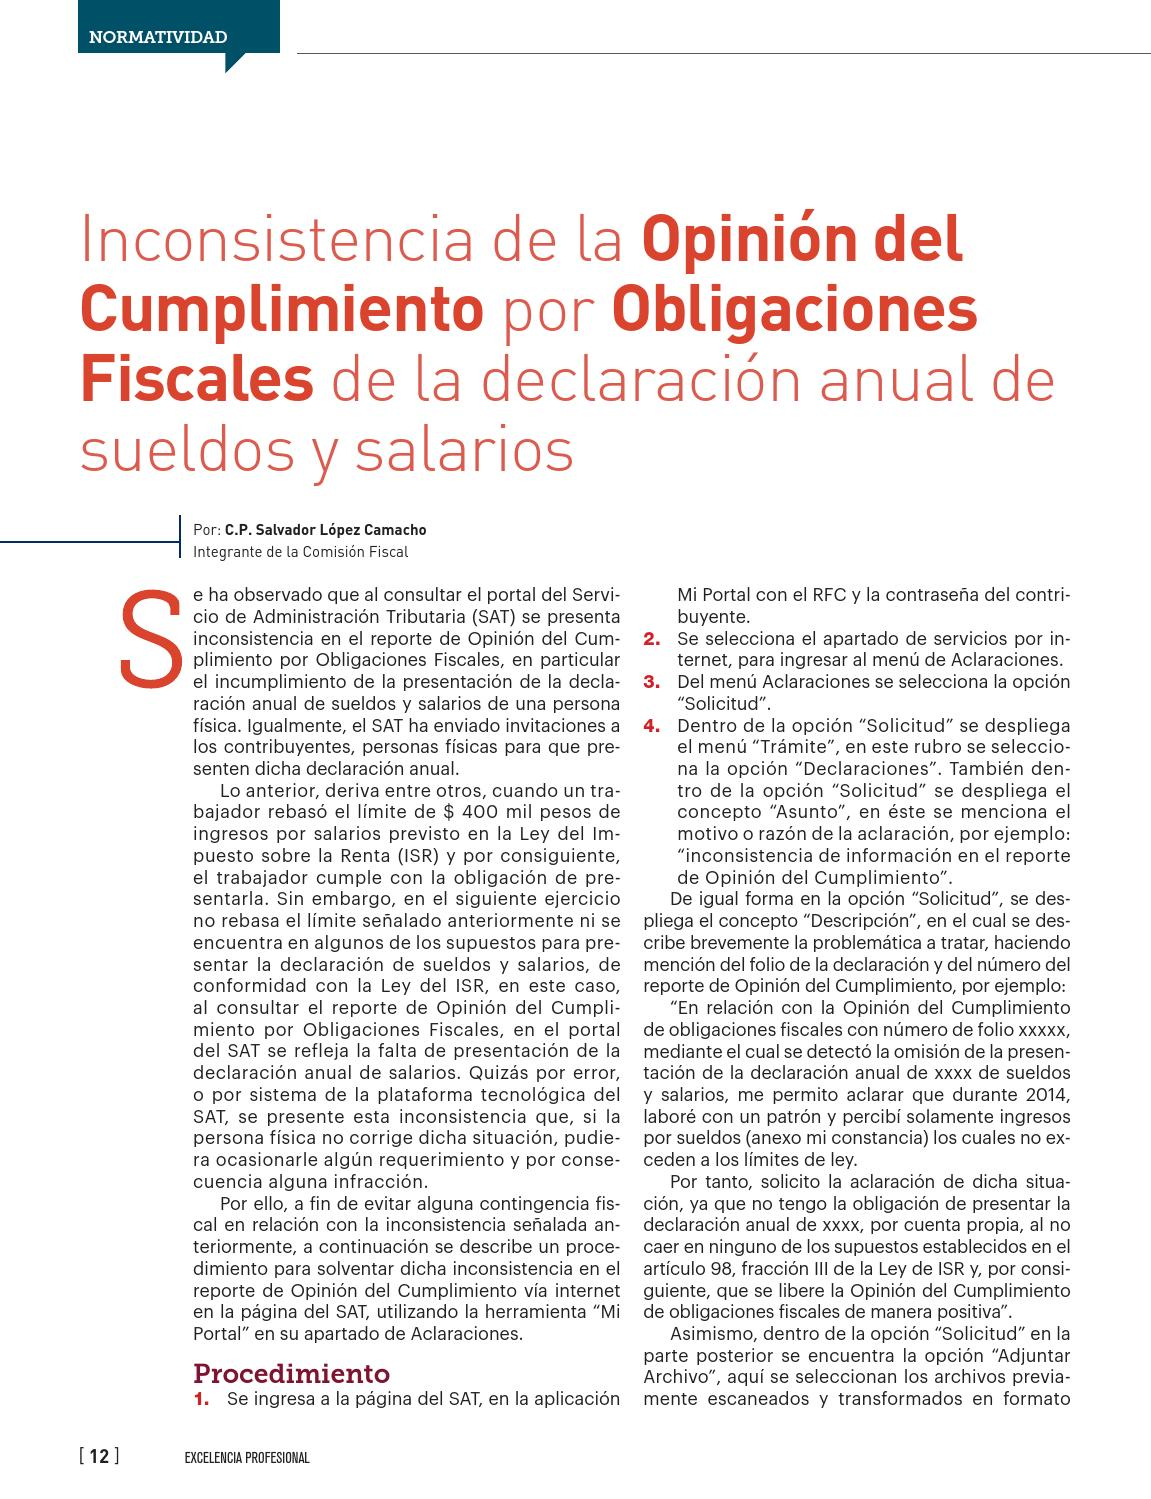 2015-09-03_inconsistencias_opinion_fiscal_sat (1)